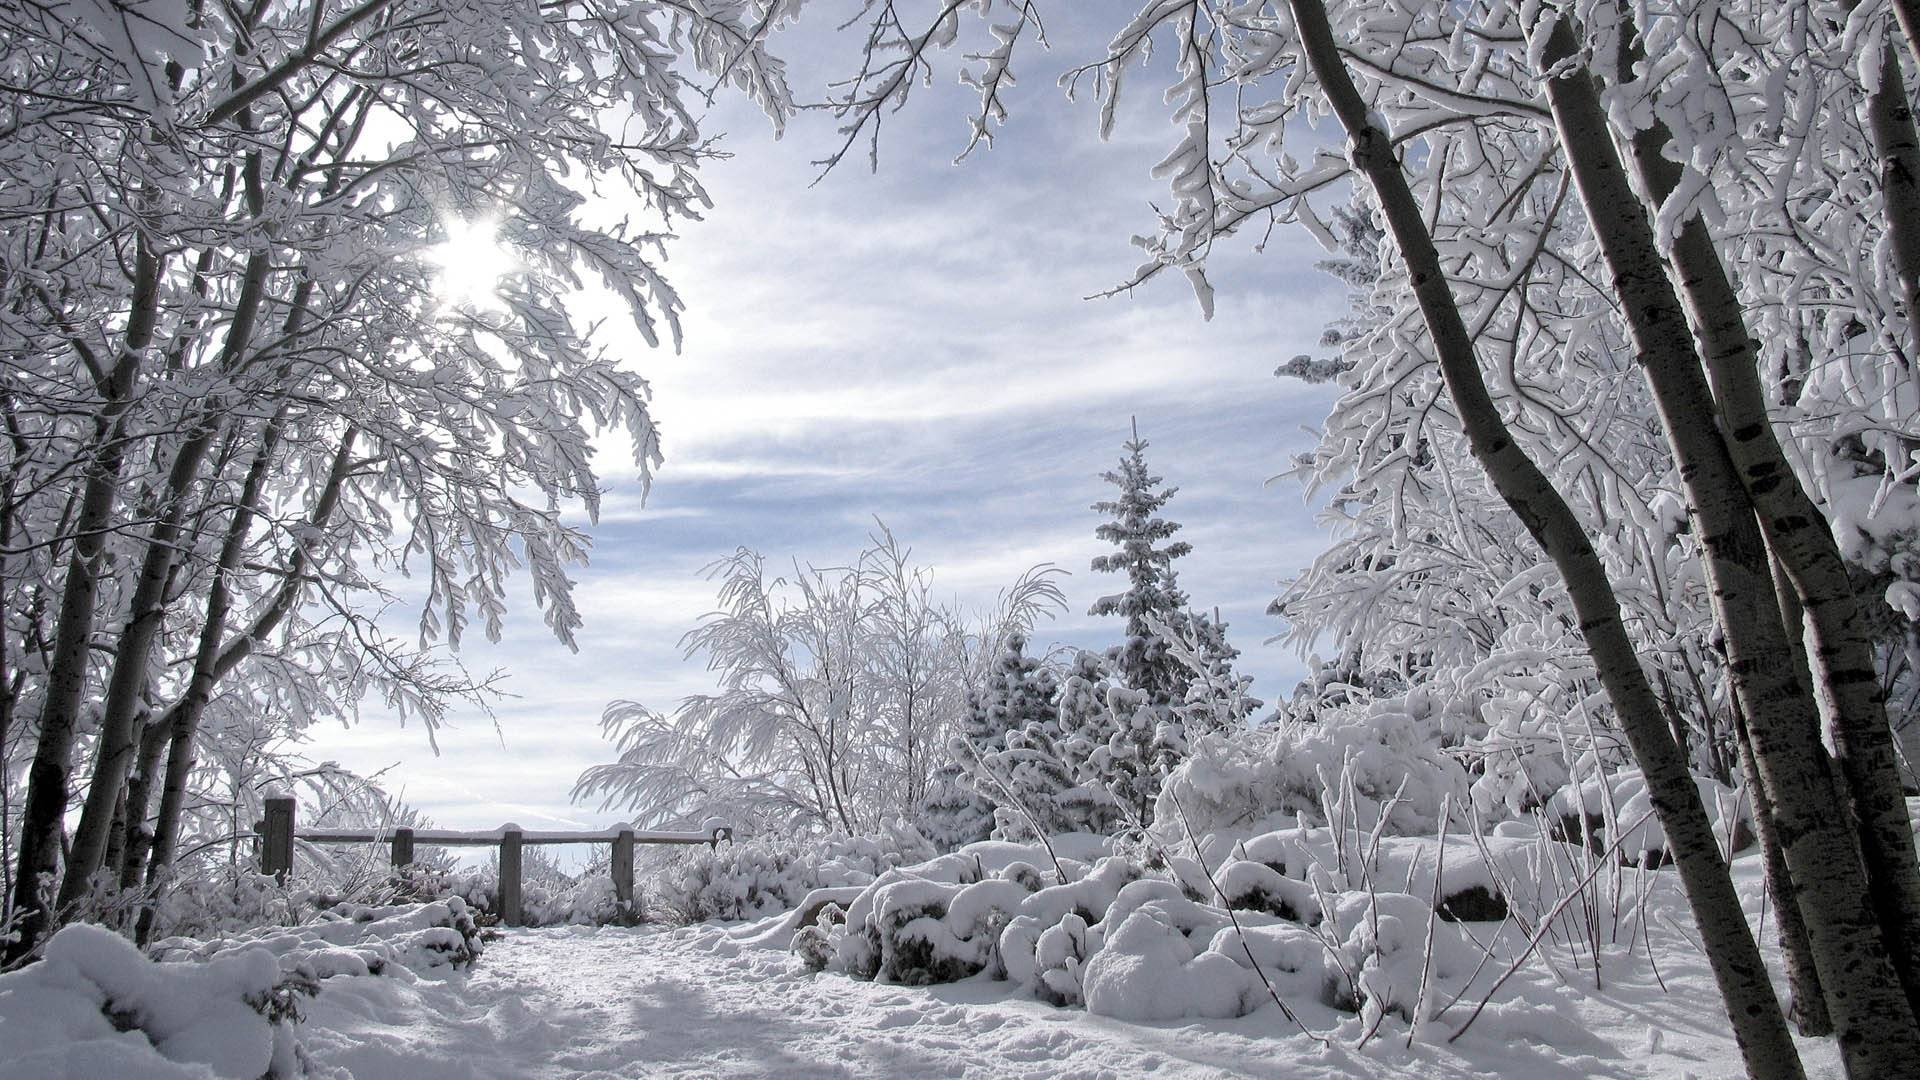 42704 download wallpaper Landscape, Winter, Snow screensavers and pictures for free